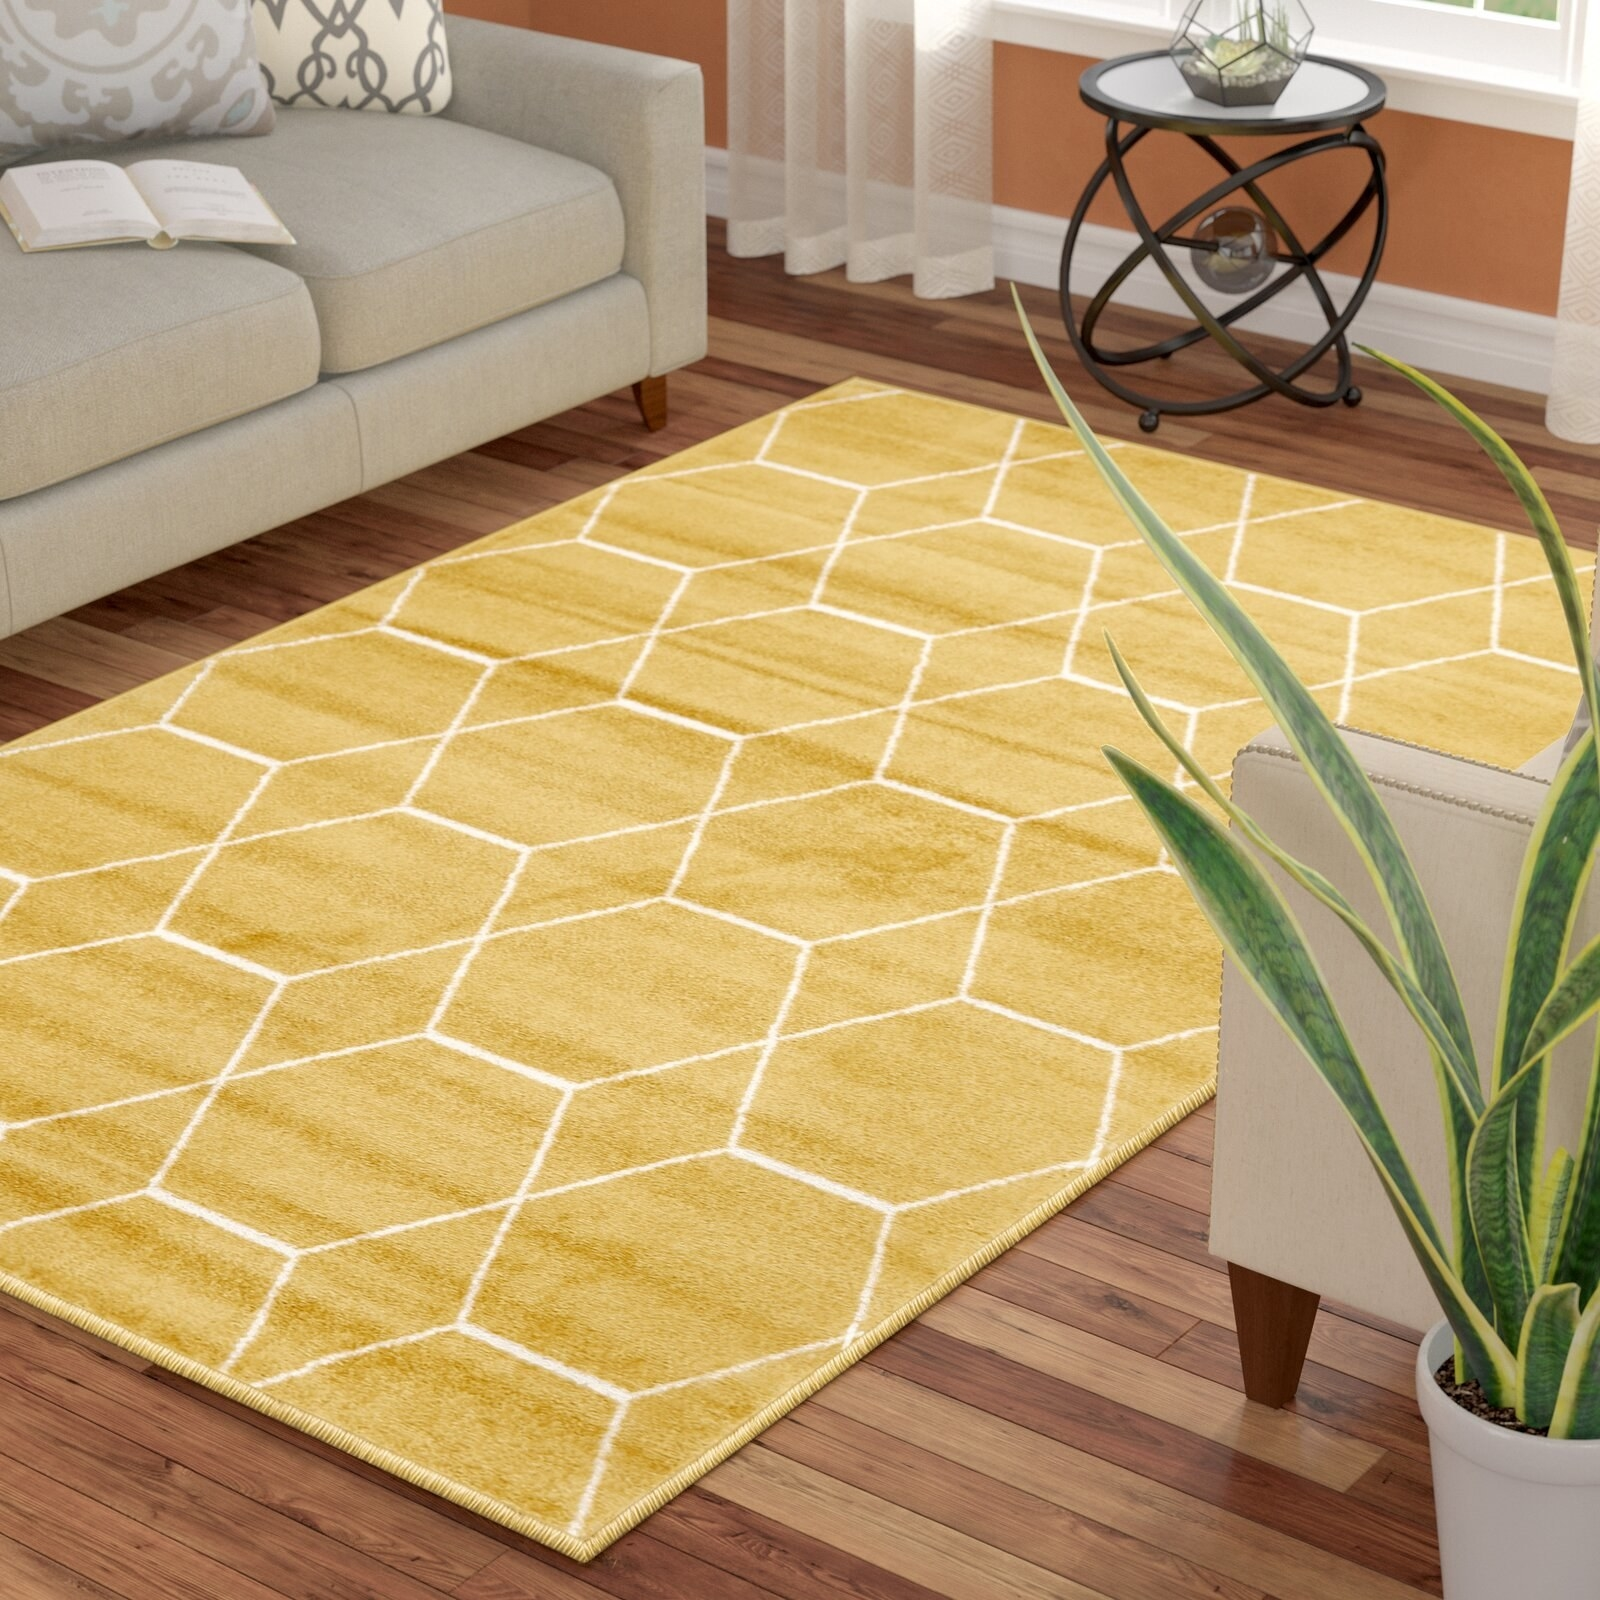 yellow geometric rug in a living room